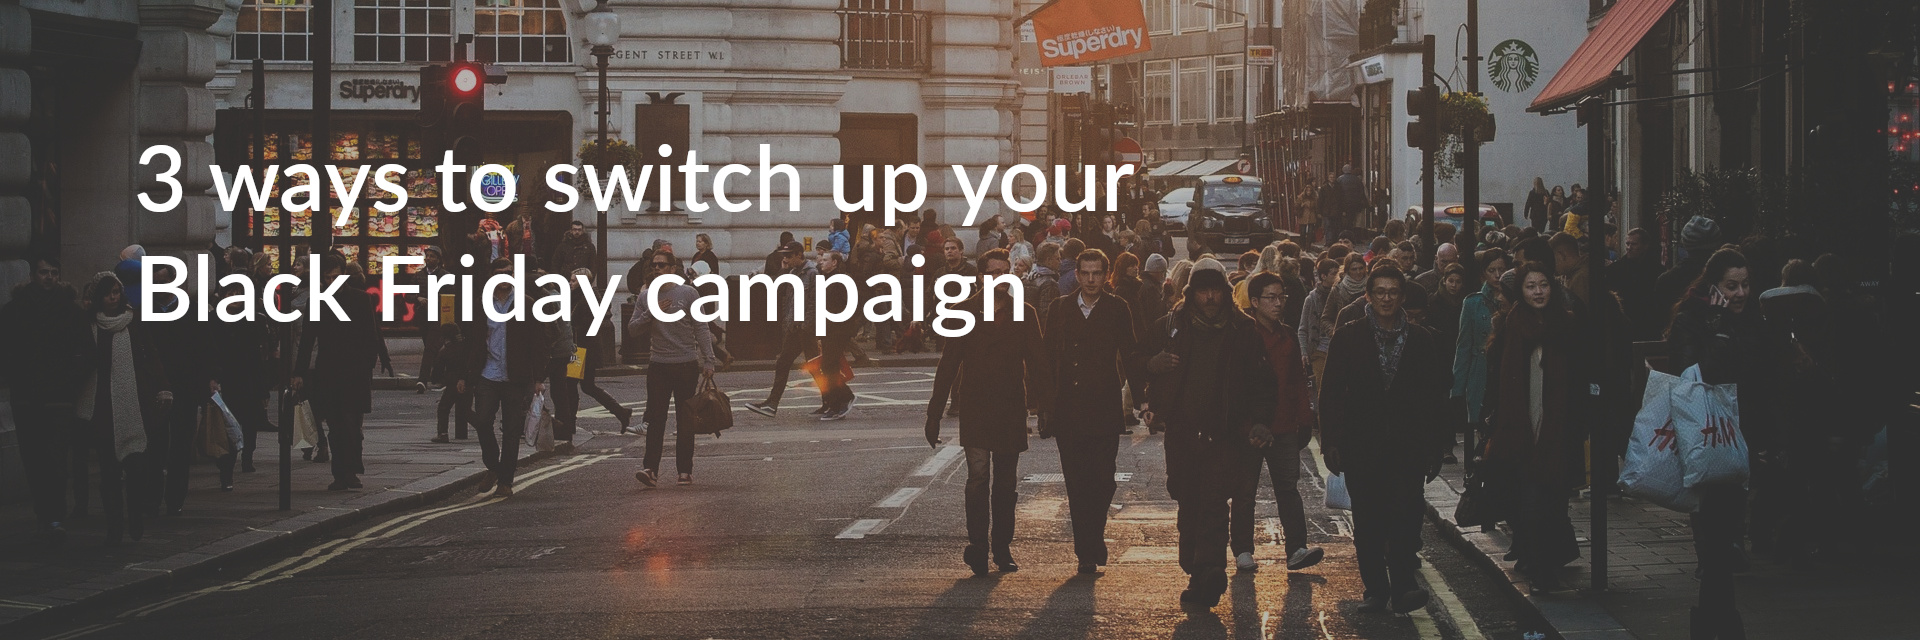 3 ways to switch up your Black Friday campaign